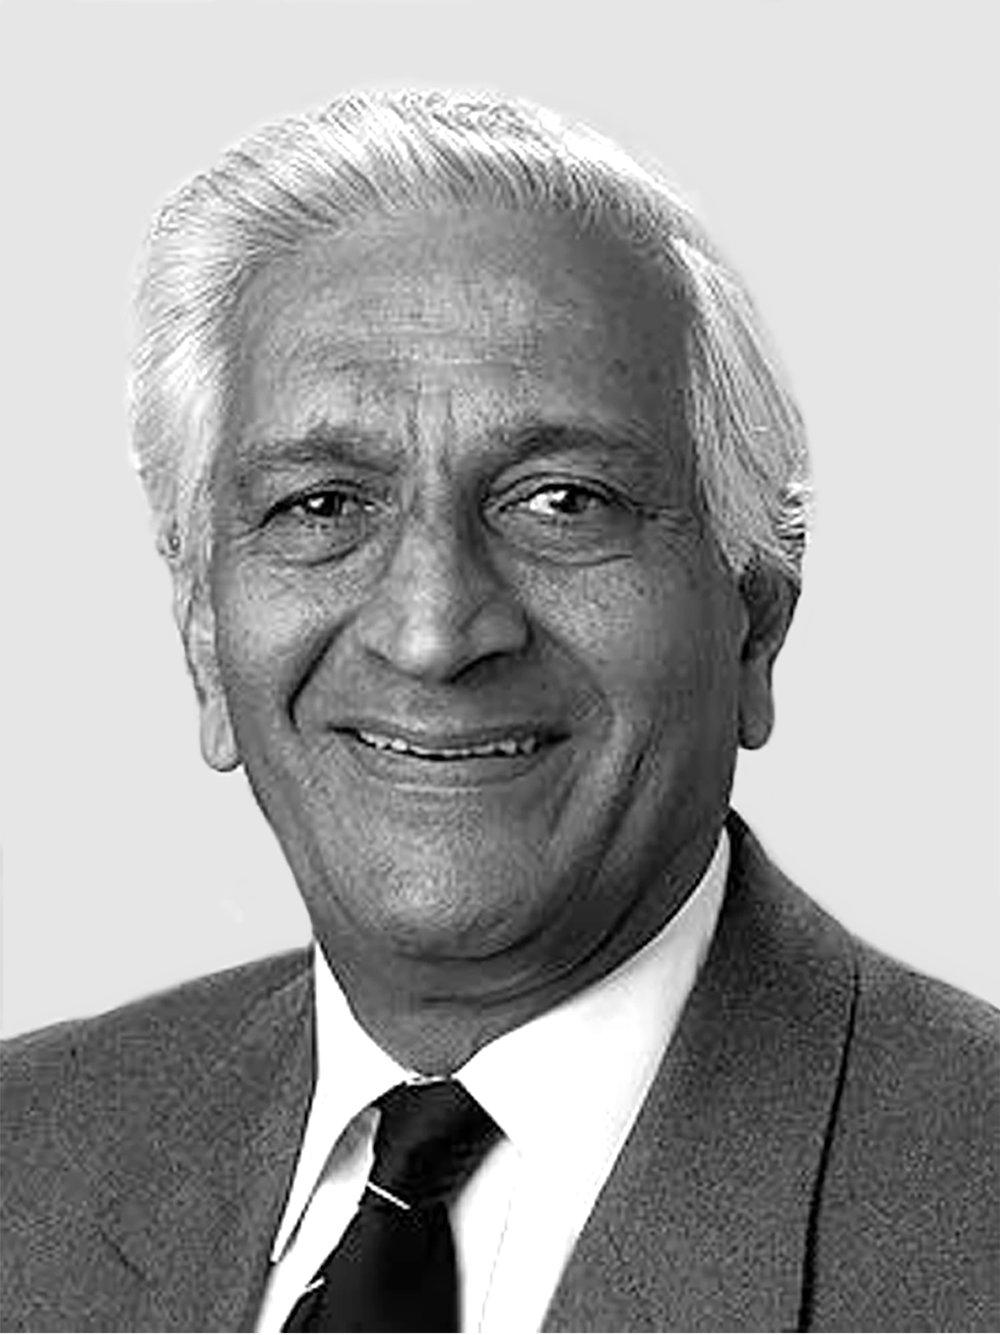 Lord Naren Patel KT//Patron Lord Patel KT is Honorary Professor at the University of Dundee, Ninewells Hospital. He is Fellow of the Royal College of Obstetricians and Gynaecologists, the Academy of Medical Sciences and The Royal Society of Edinburgh. He holds the Honorary Doctorate in Science, Medicine and Law from the Universities of Napier; Edinburgh; Aberdeen; St. Andrews; Dundee; Athens and Stellenbosch South Africa. He holds a further 18 Honorary Fellowships of universities and national organisations worldwide in surgery, anaesthesia, public health, general practice, psychiatry and obstetrics and gynaecology. He was awarded a Knighthood in the Queens Birthday Honours List in 1997 and was made a life Peer with the title of Baron Patel of Dunkeld in Perth and Kinross in the Queens New Years Honours List in 1999.  His academic and clinical interests are in the field of high-risk obstetrics. He has published widely on the subjects of preterm labour, fetal growth retardation, obstetric epidemiology etc. His current interests are in health quality and standards of clinical care and patient safety.